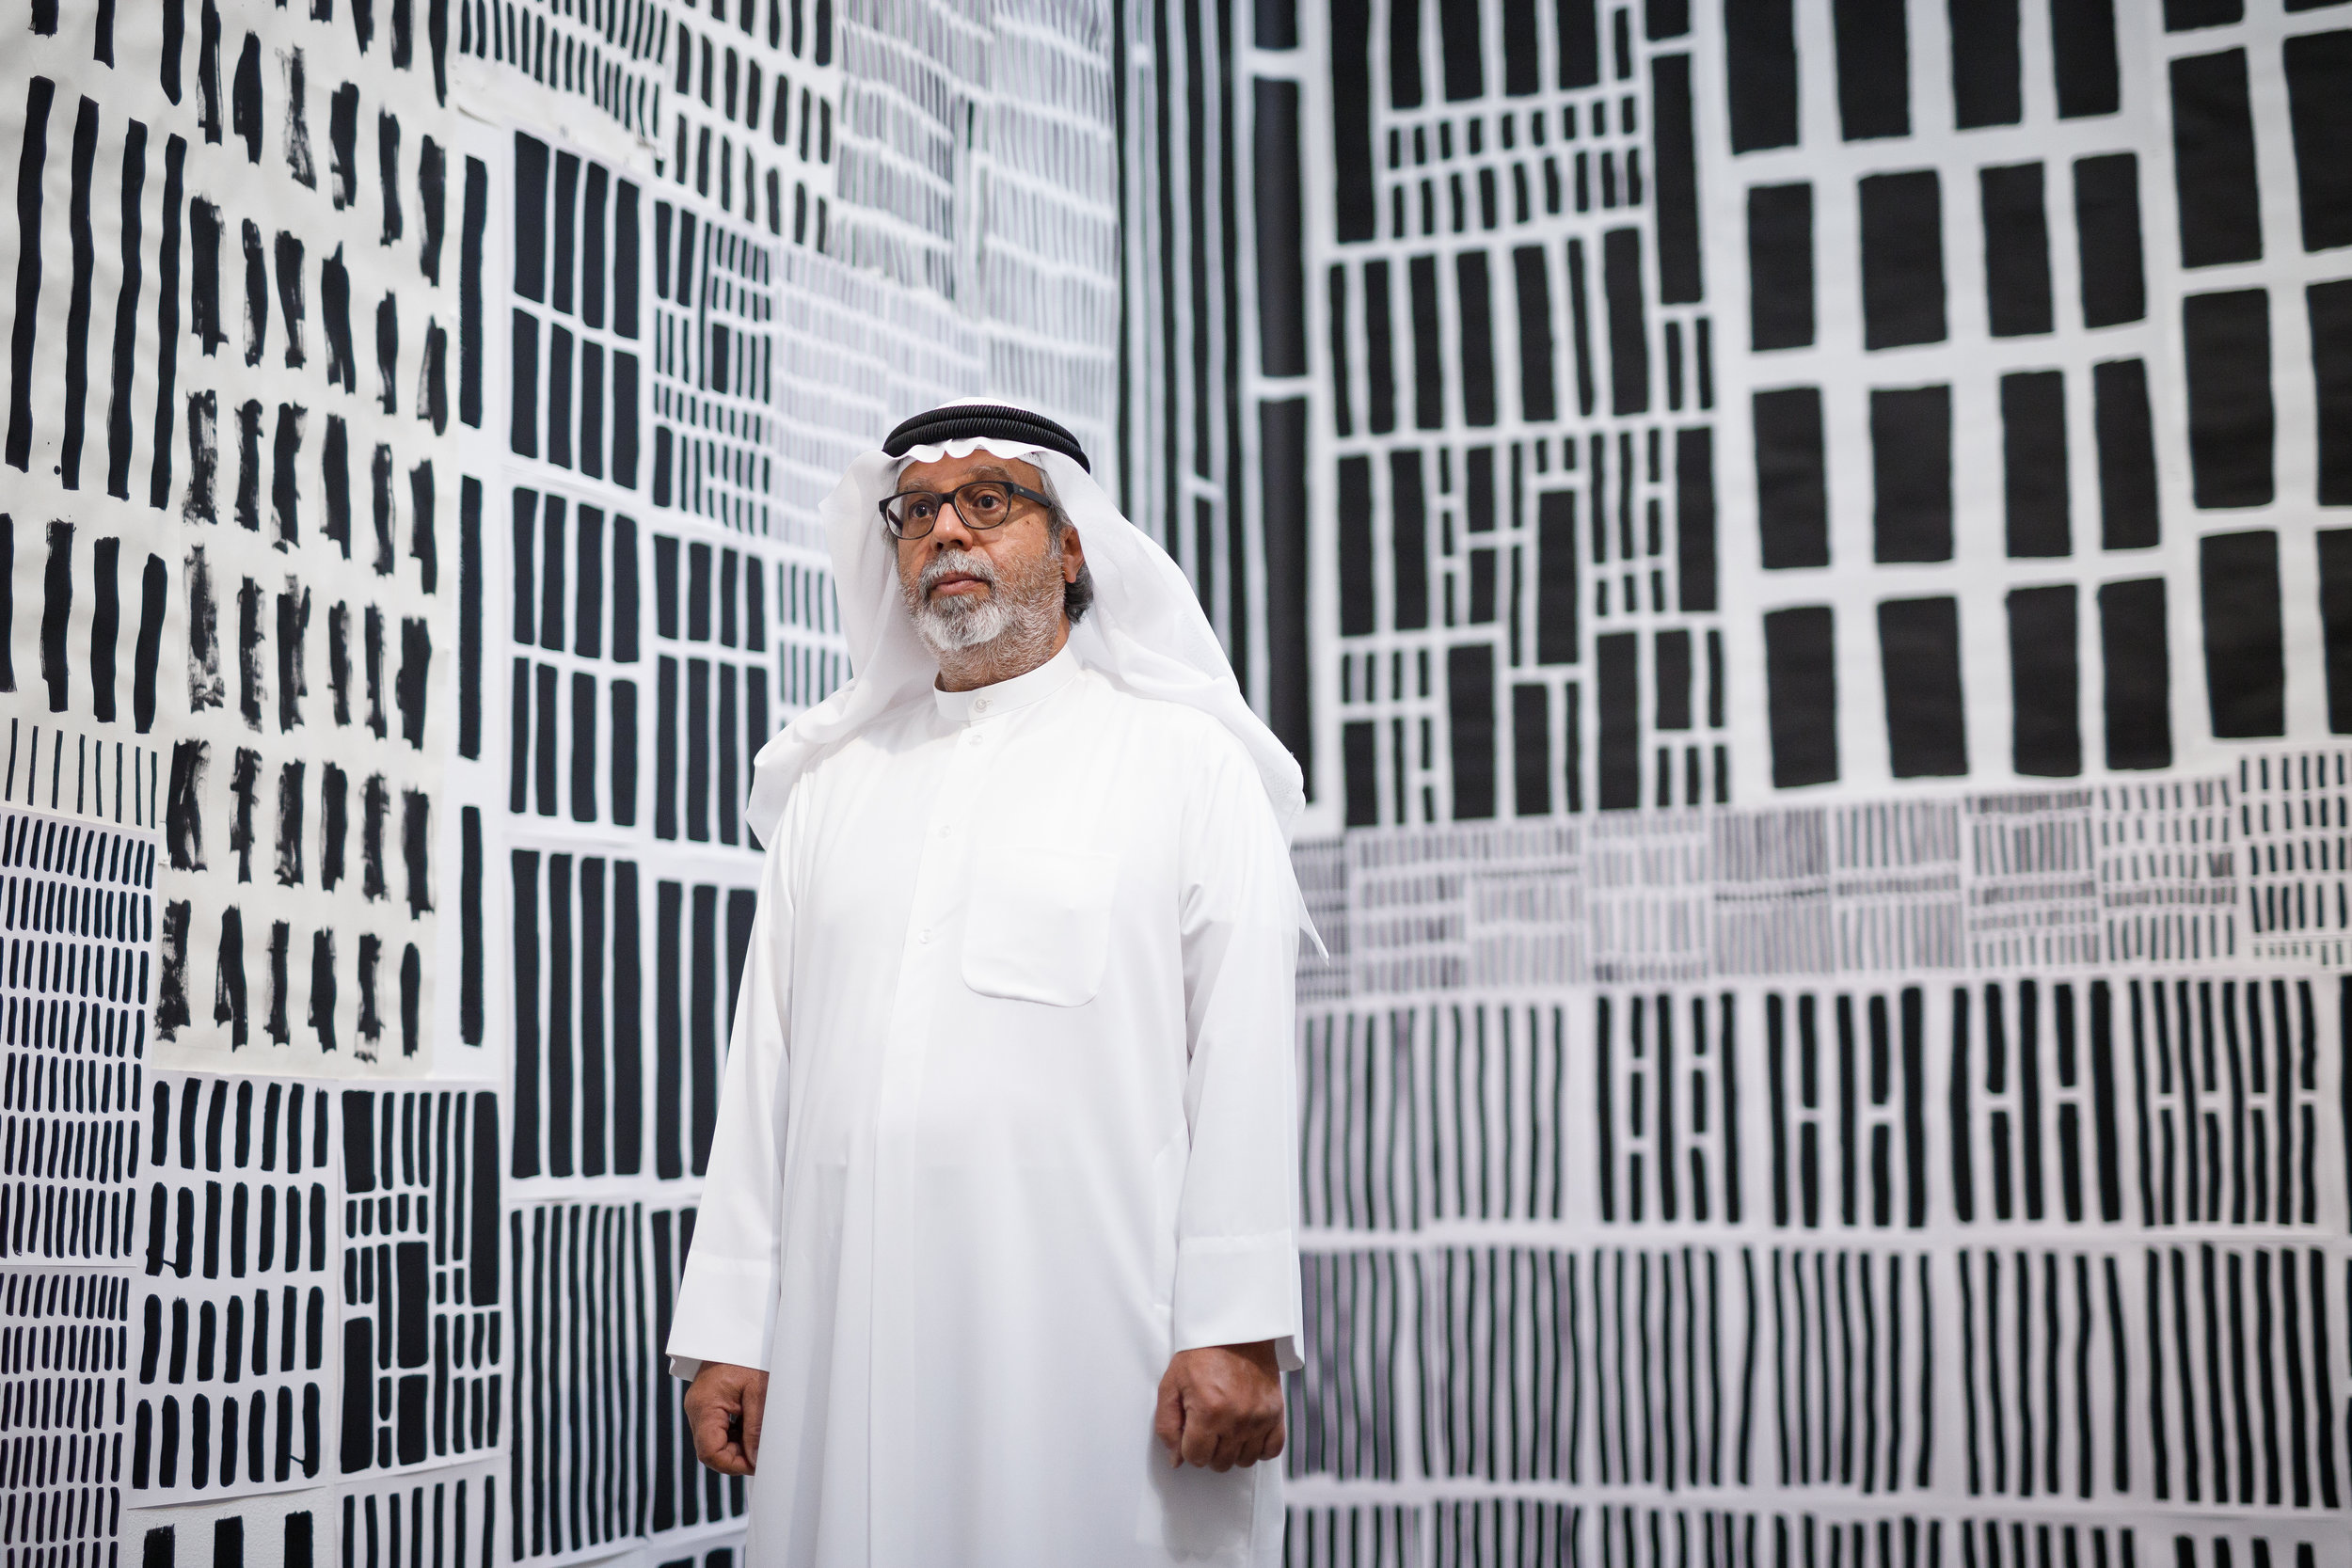 Mohammed Ahmed Ibrahim in his installation room inside his exhibition at Lawrie Shabibi. Image courtesy of Lawrie Shabibi.